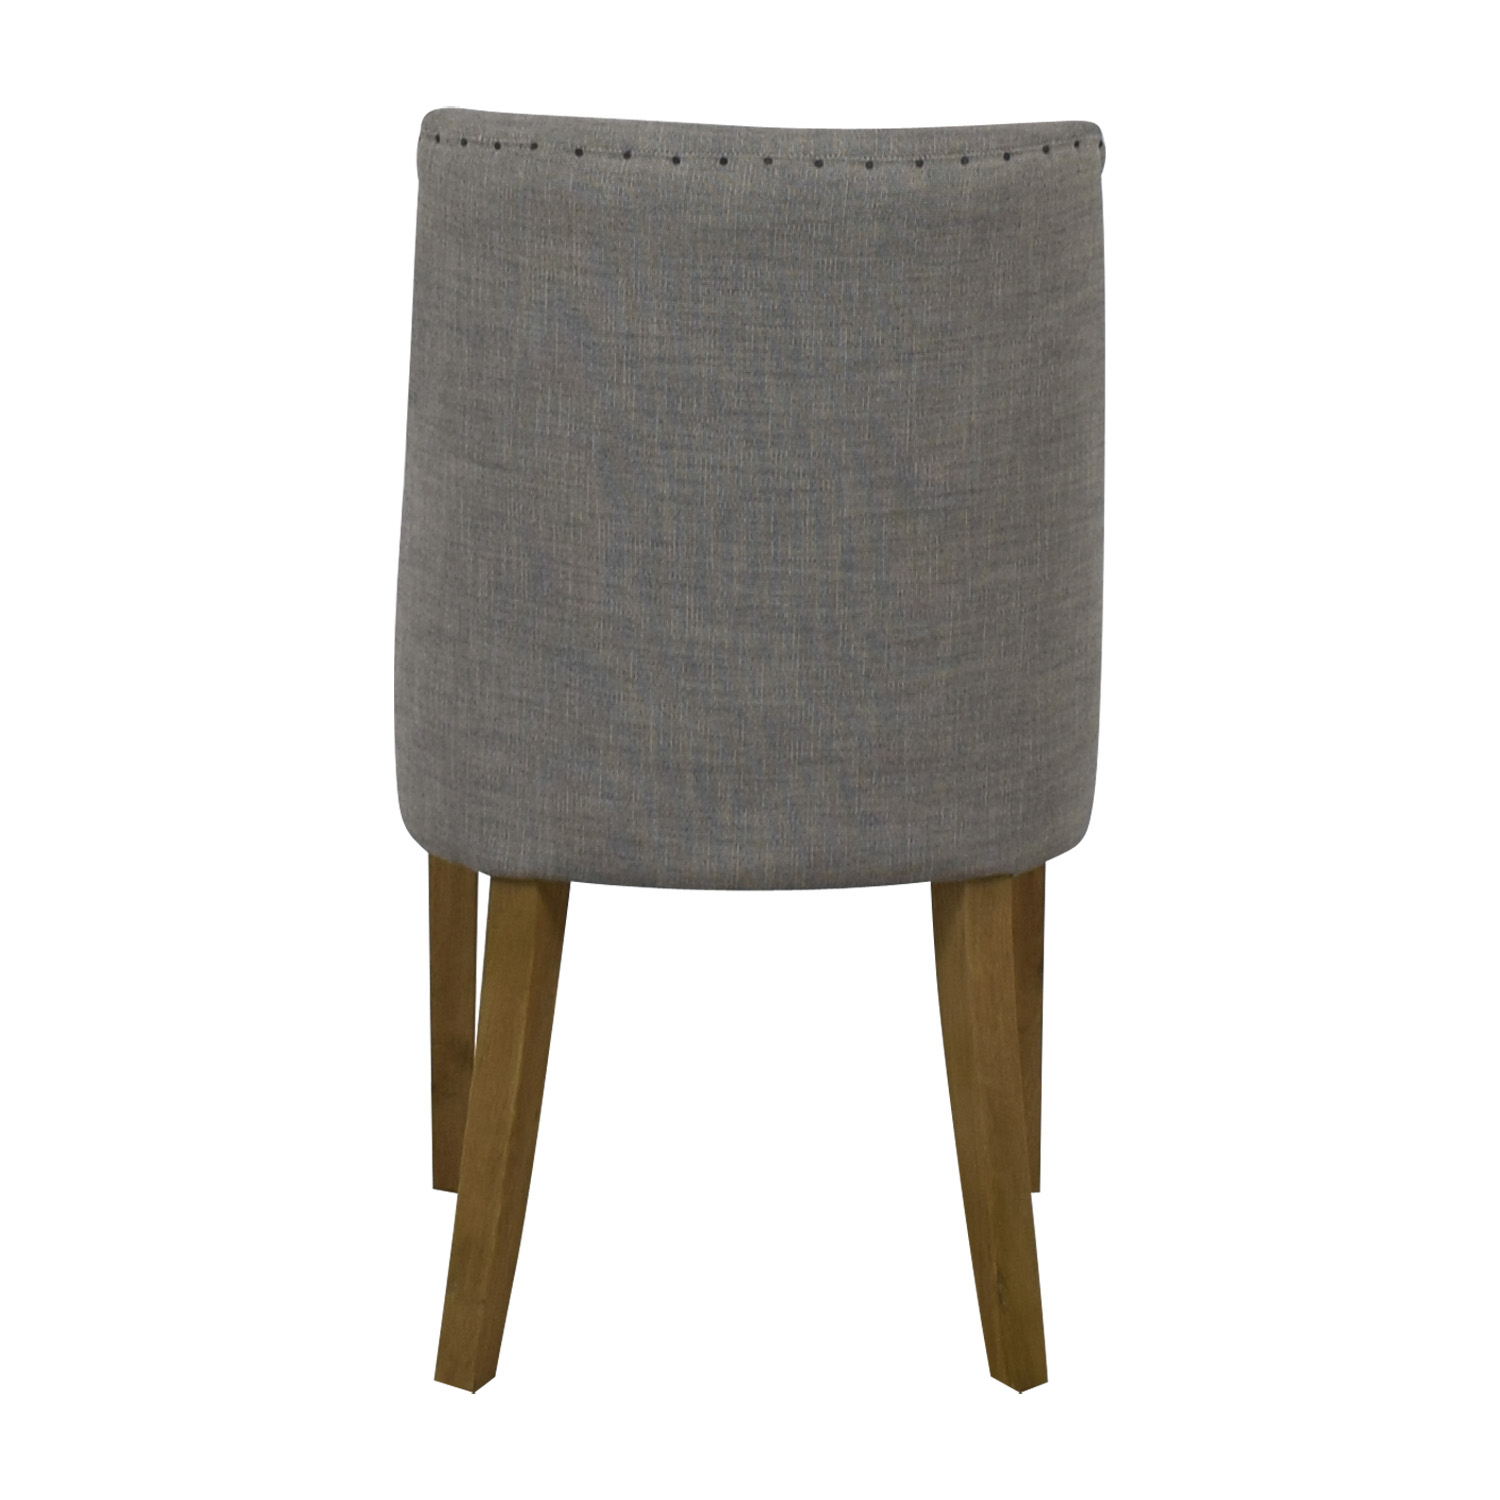 shop Restoration Hardware Restoration Hardware 1940S French Barrelback Fabric Side Chair online